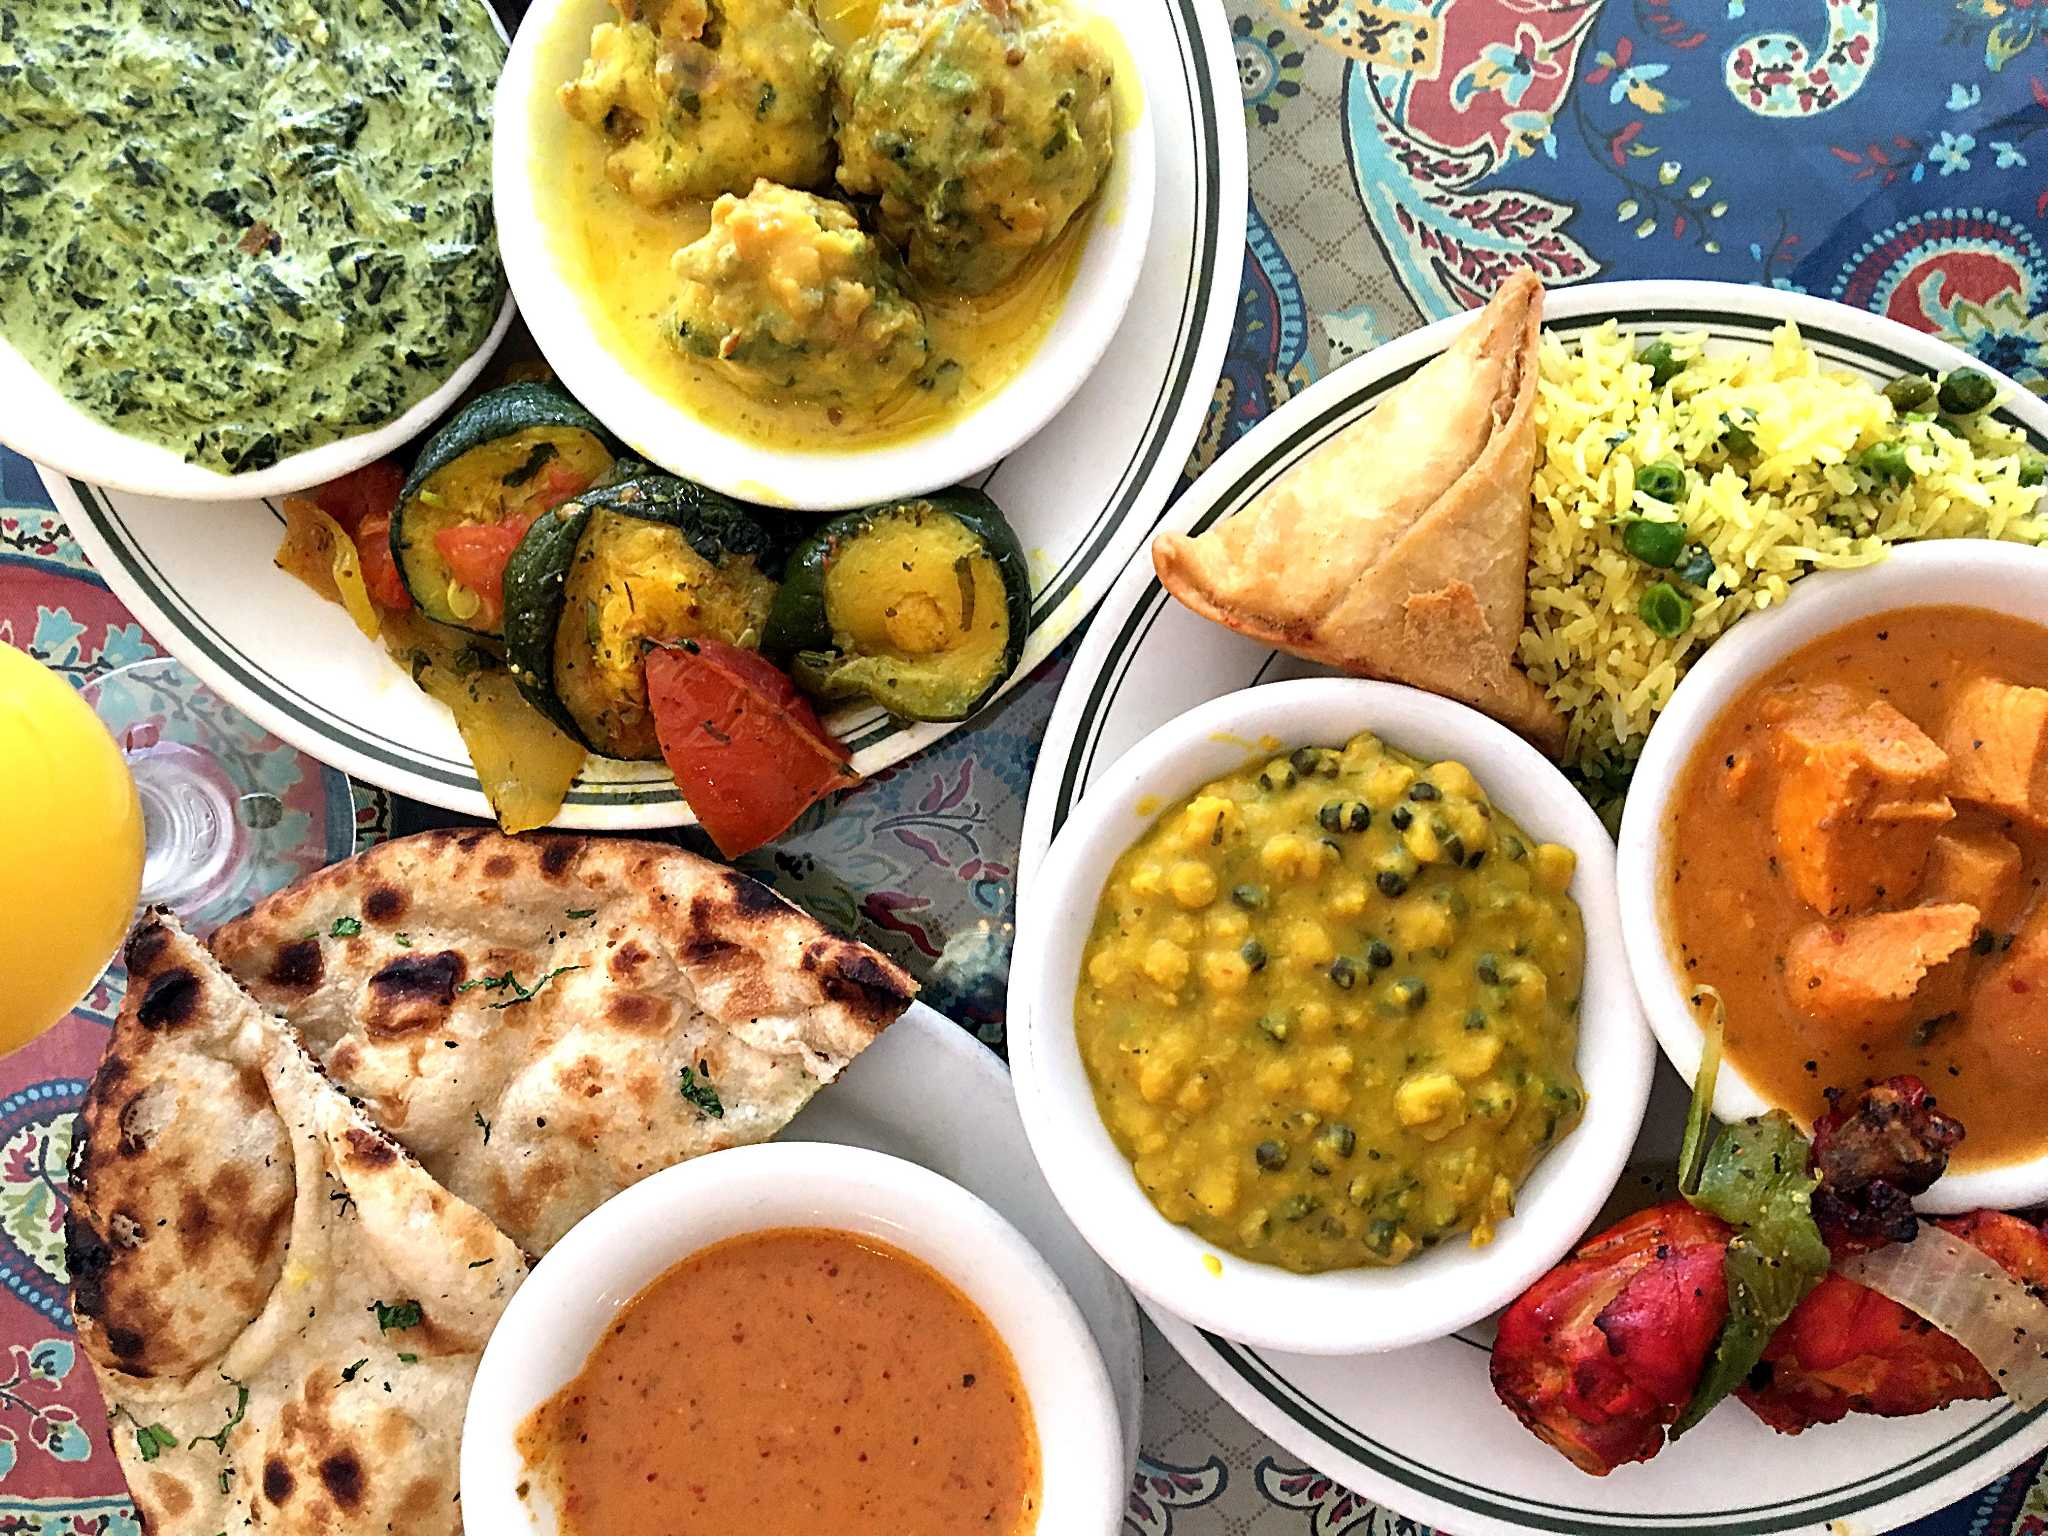 Cuisine India Review Simi S India Cuisine Makes All You Can Eat Look Good